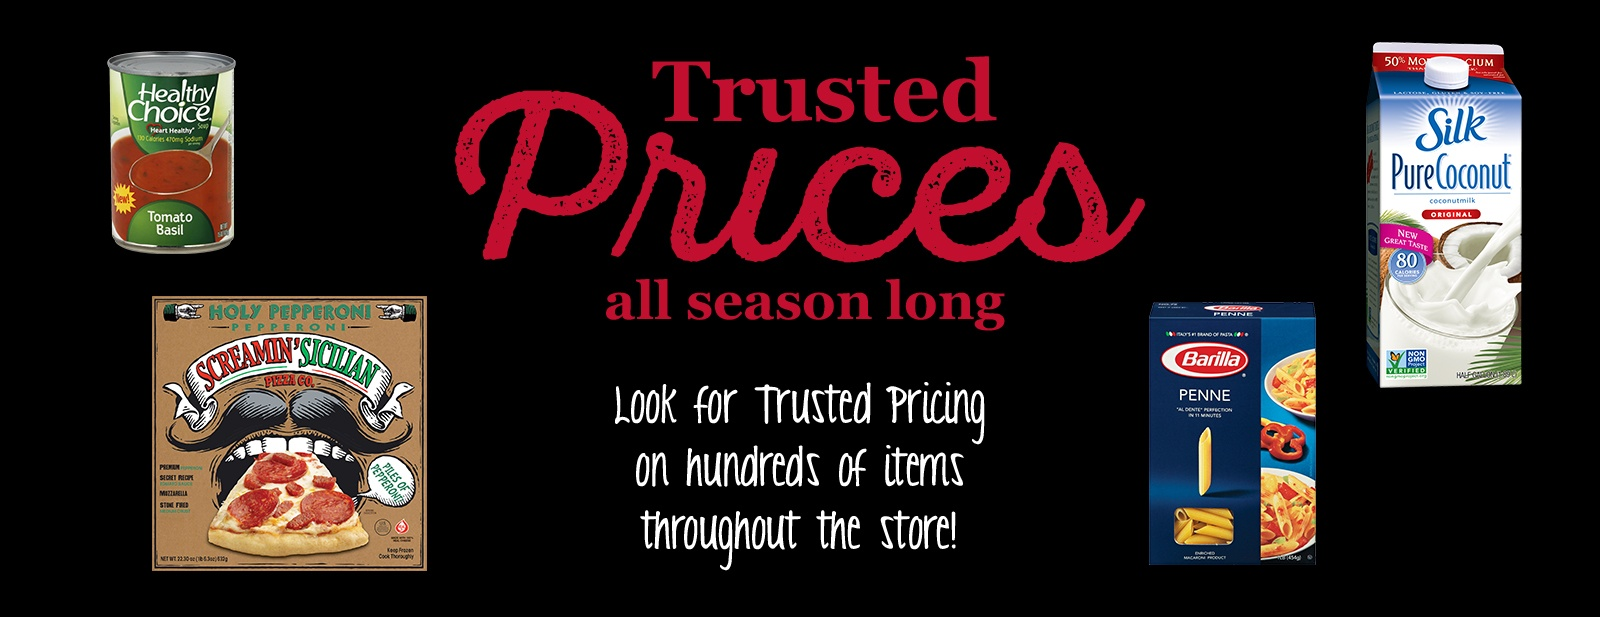 Trusted Prices